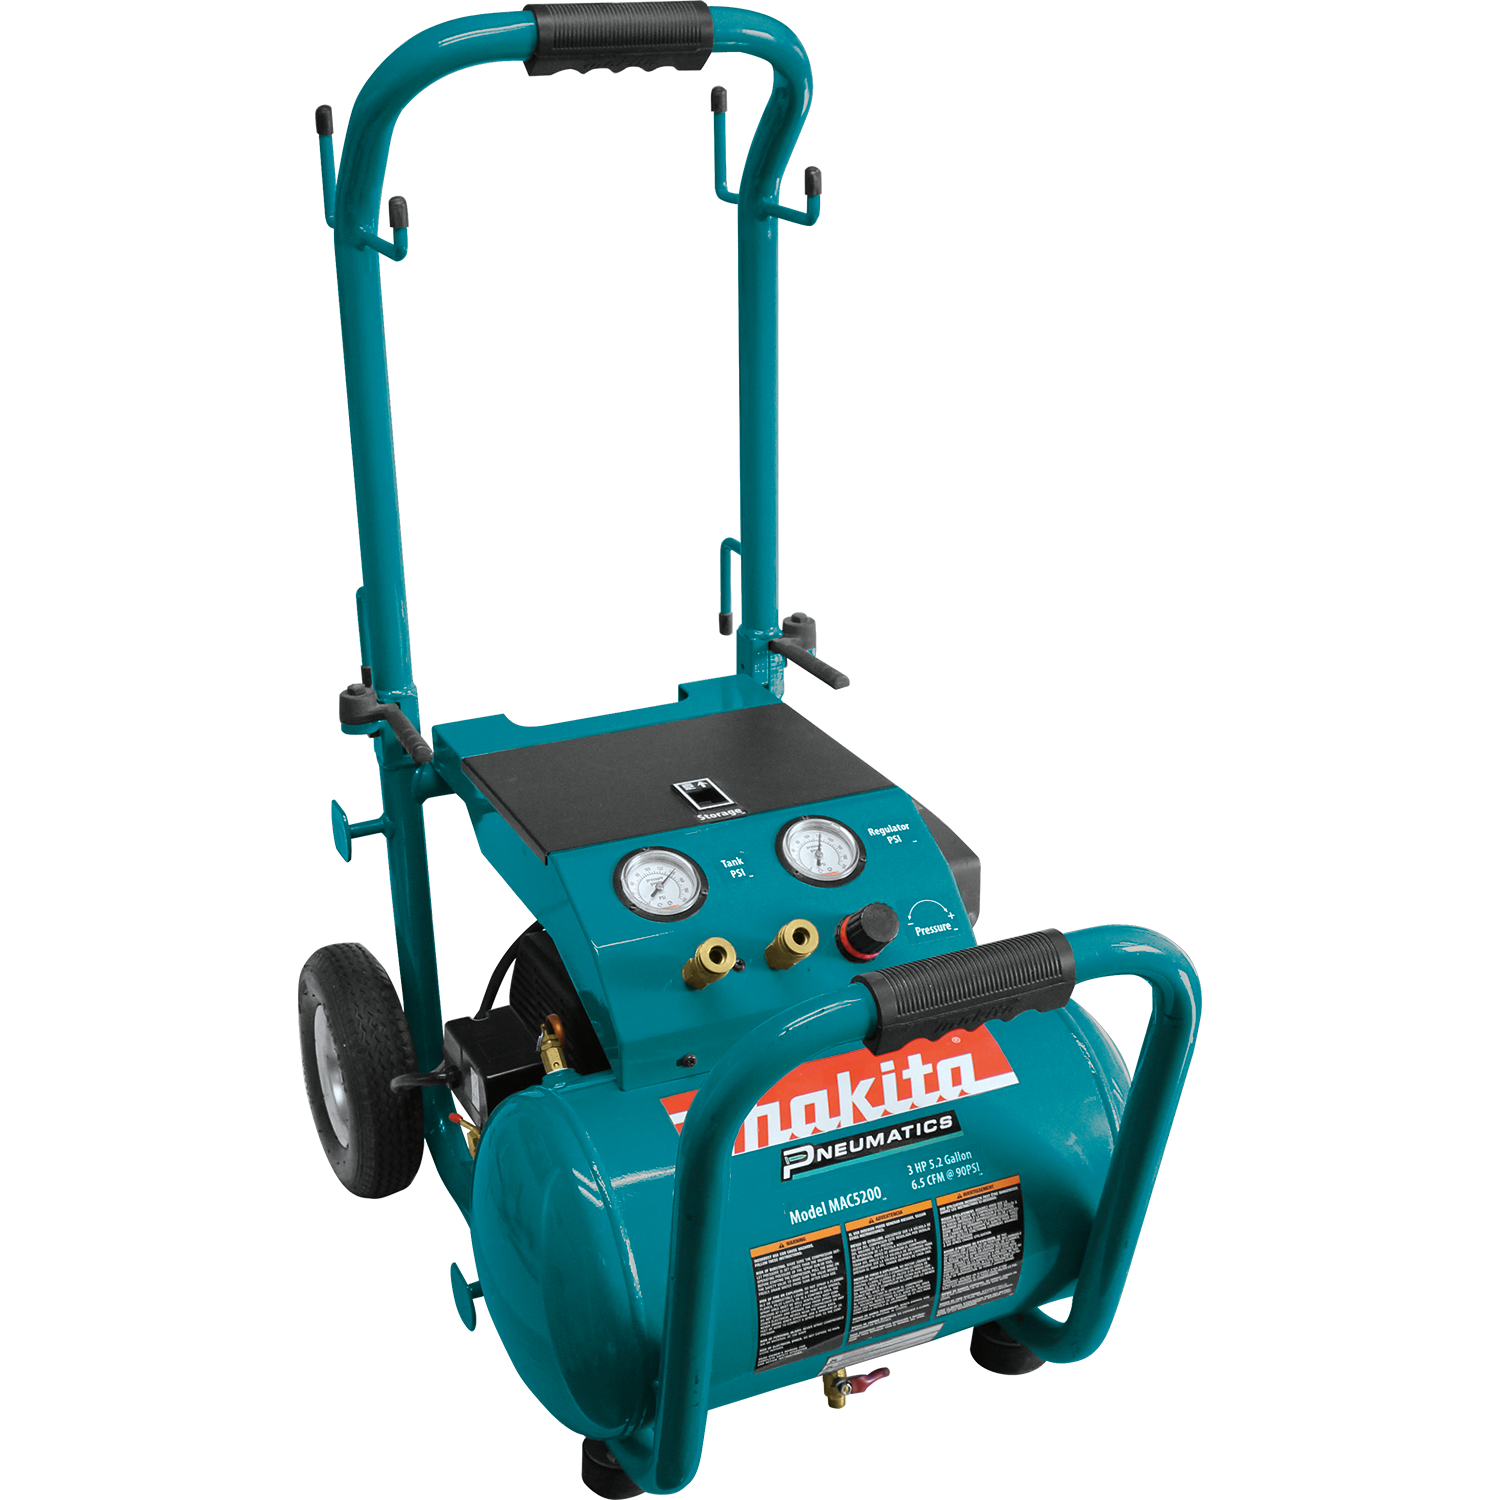 Makita USA - Product Details -MAC5200 on